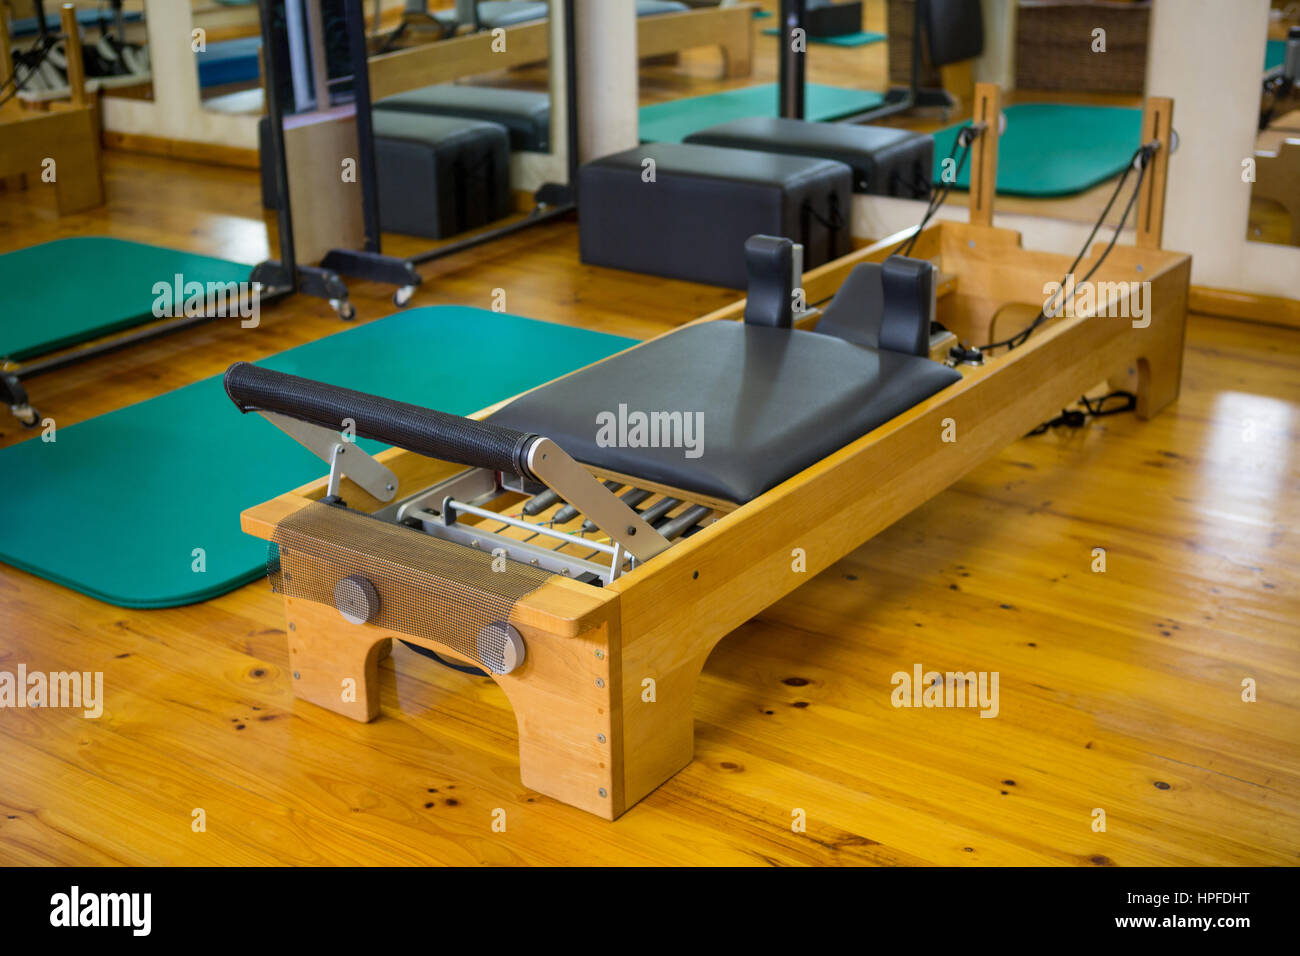 Reformer on wooden floor in gym - Stock Image